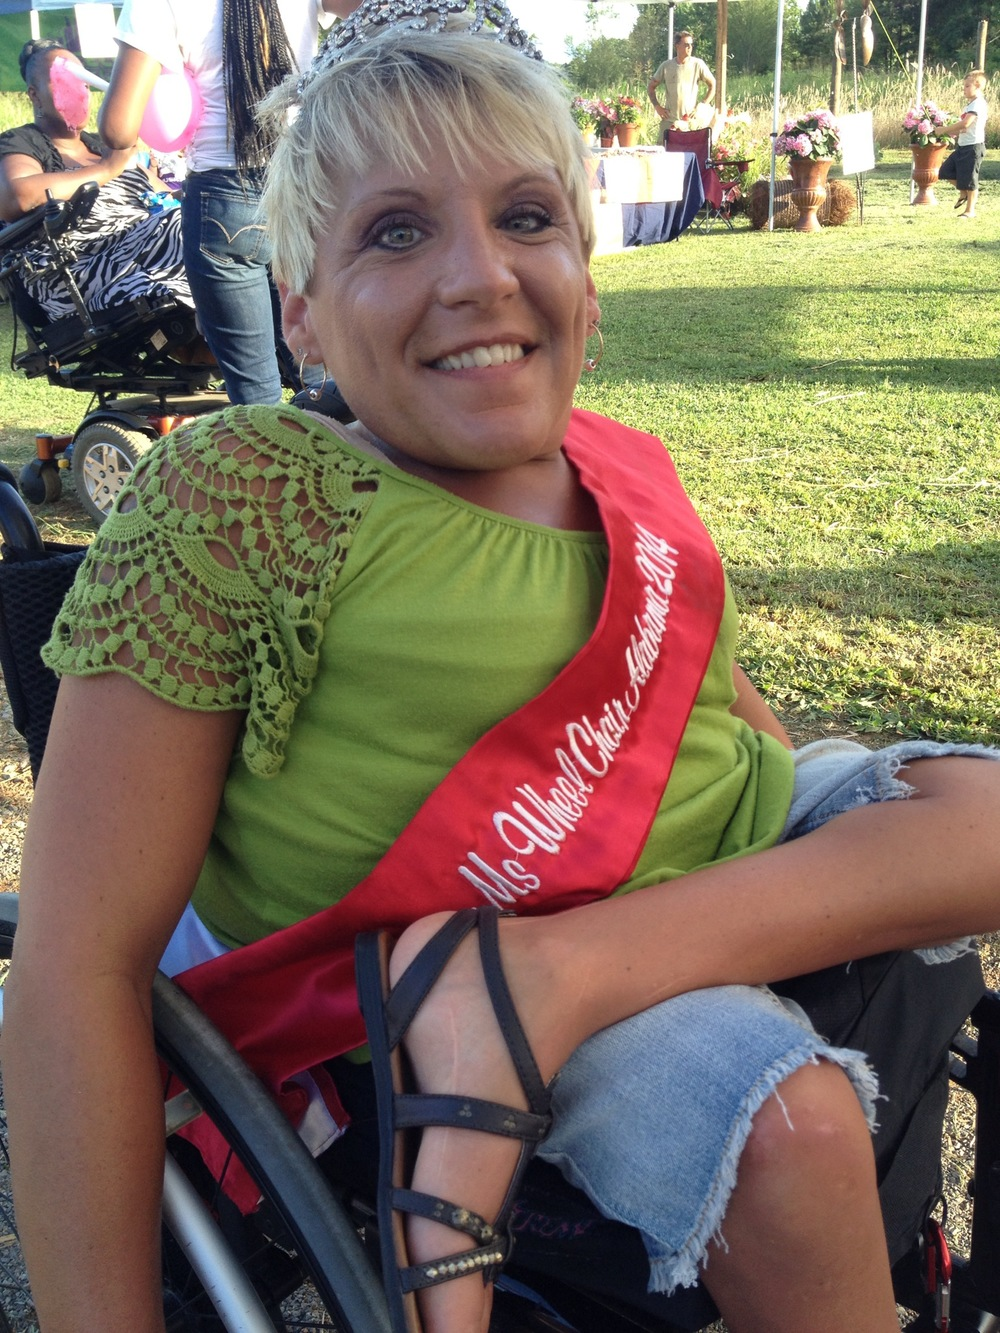 Country carnival for a Cause 2014 raises money for Miss Wheelchair Alabama